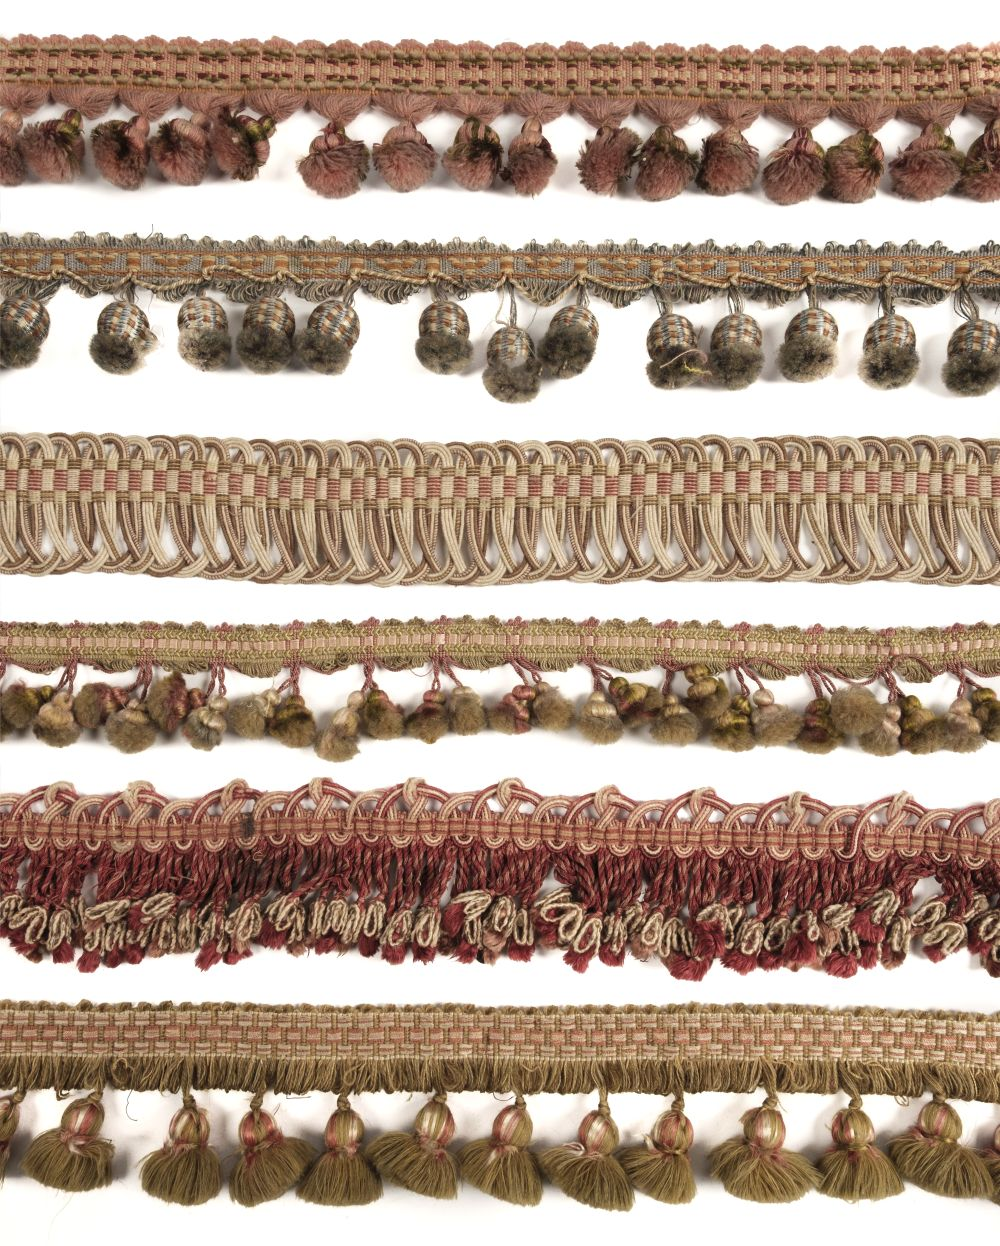 * Passementerie. A collection of good quality sewing braids, fringes, and edgings, 19th/20th century